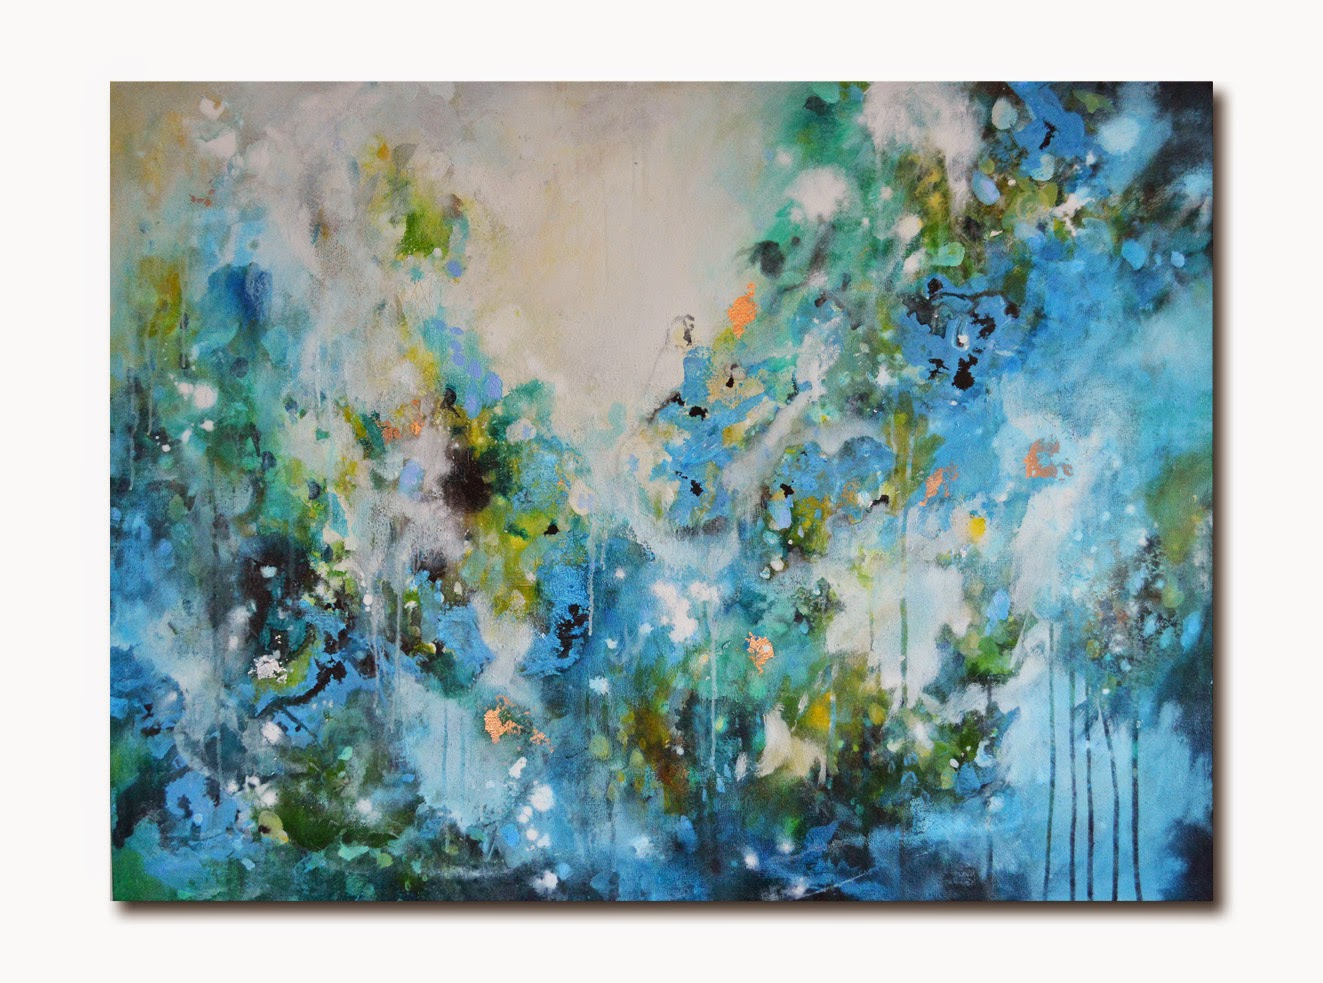 http://www.tracyannmarrison.co.uk/abstract-paintings/519889_ive-been-whispering-softly.html